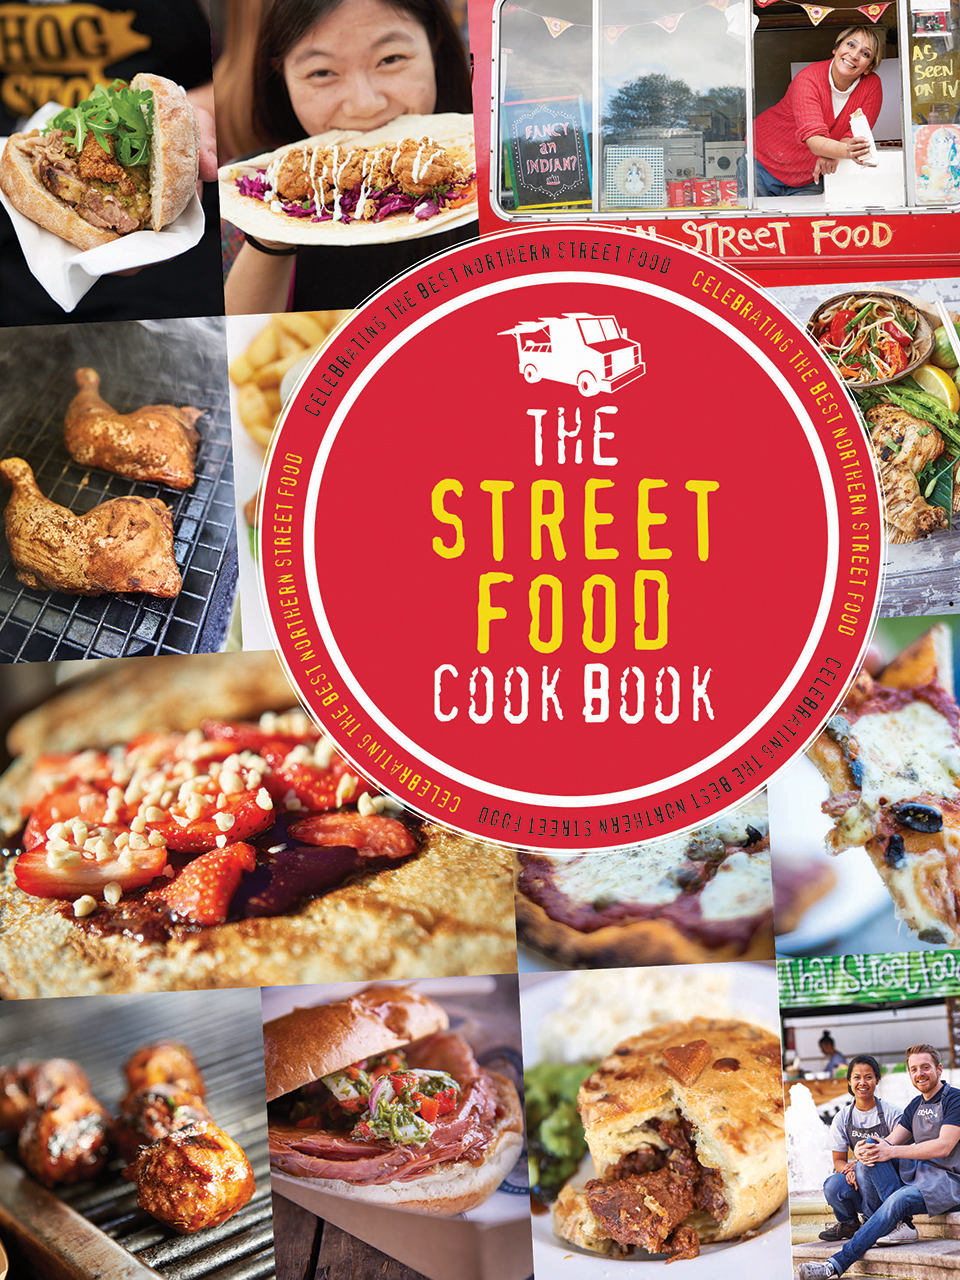 The street food cook book northern edition meze publishing we bookshop about us contact us forumfinder Gallery